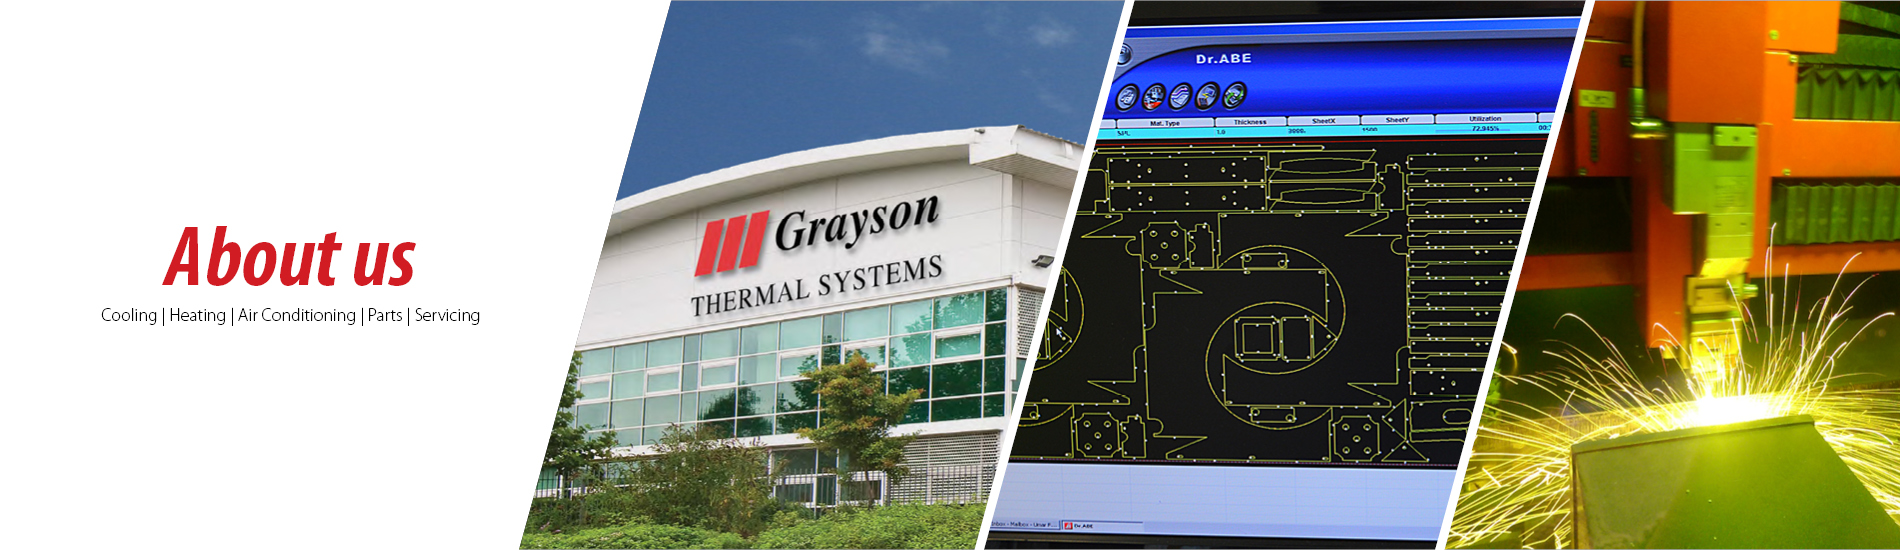 Find out about Grayson Thermal Systems